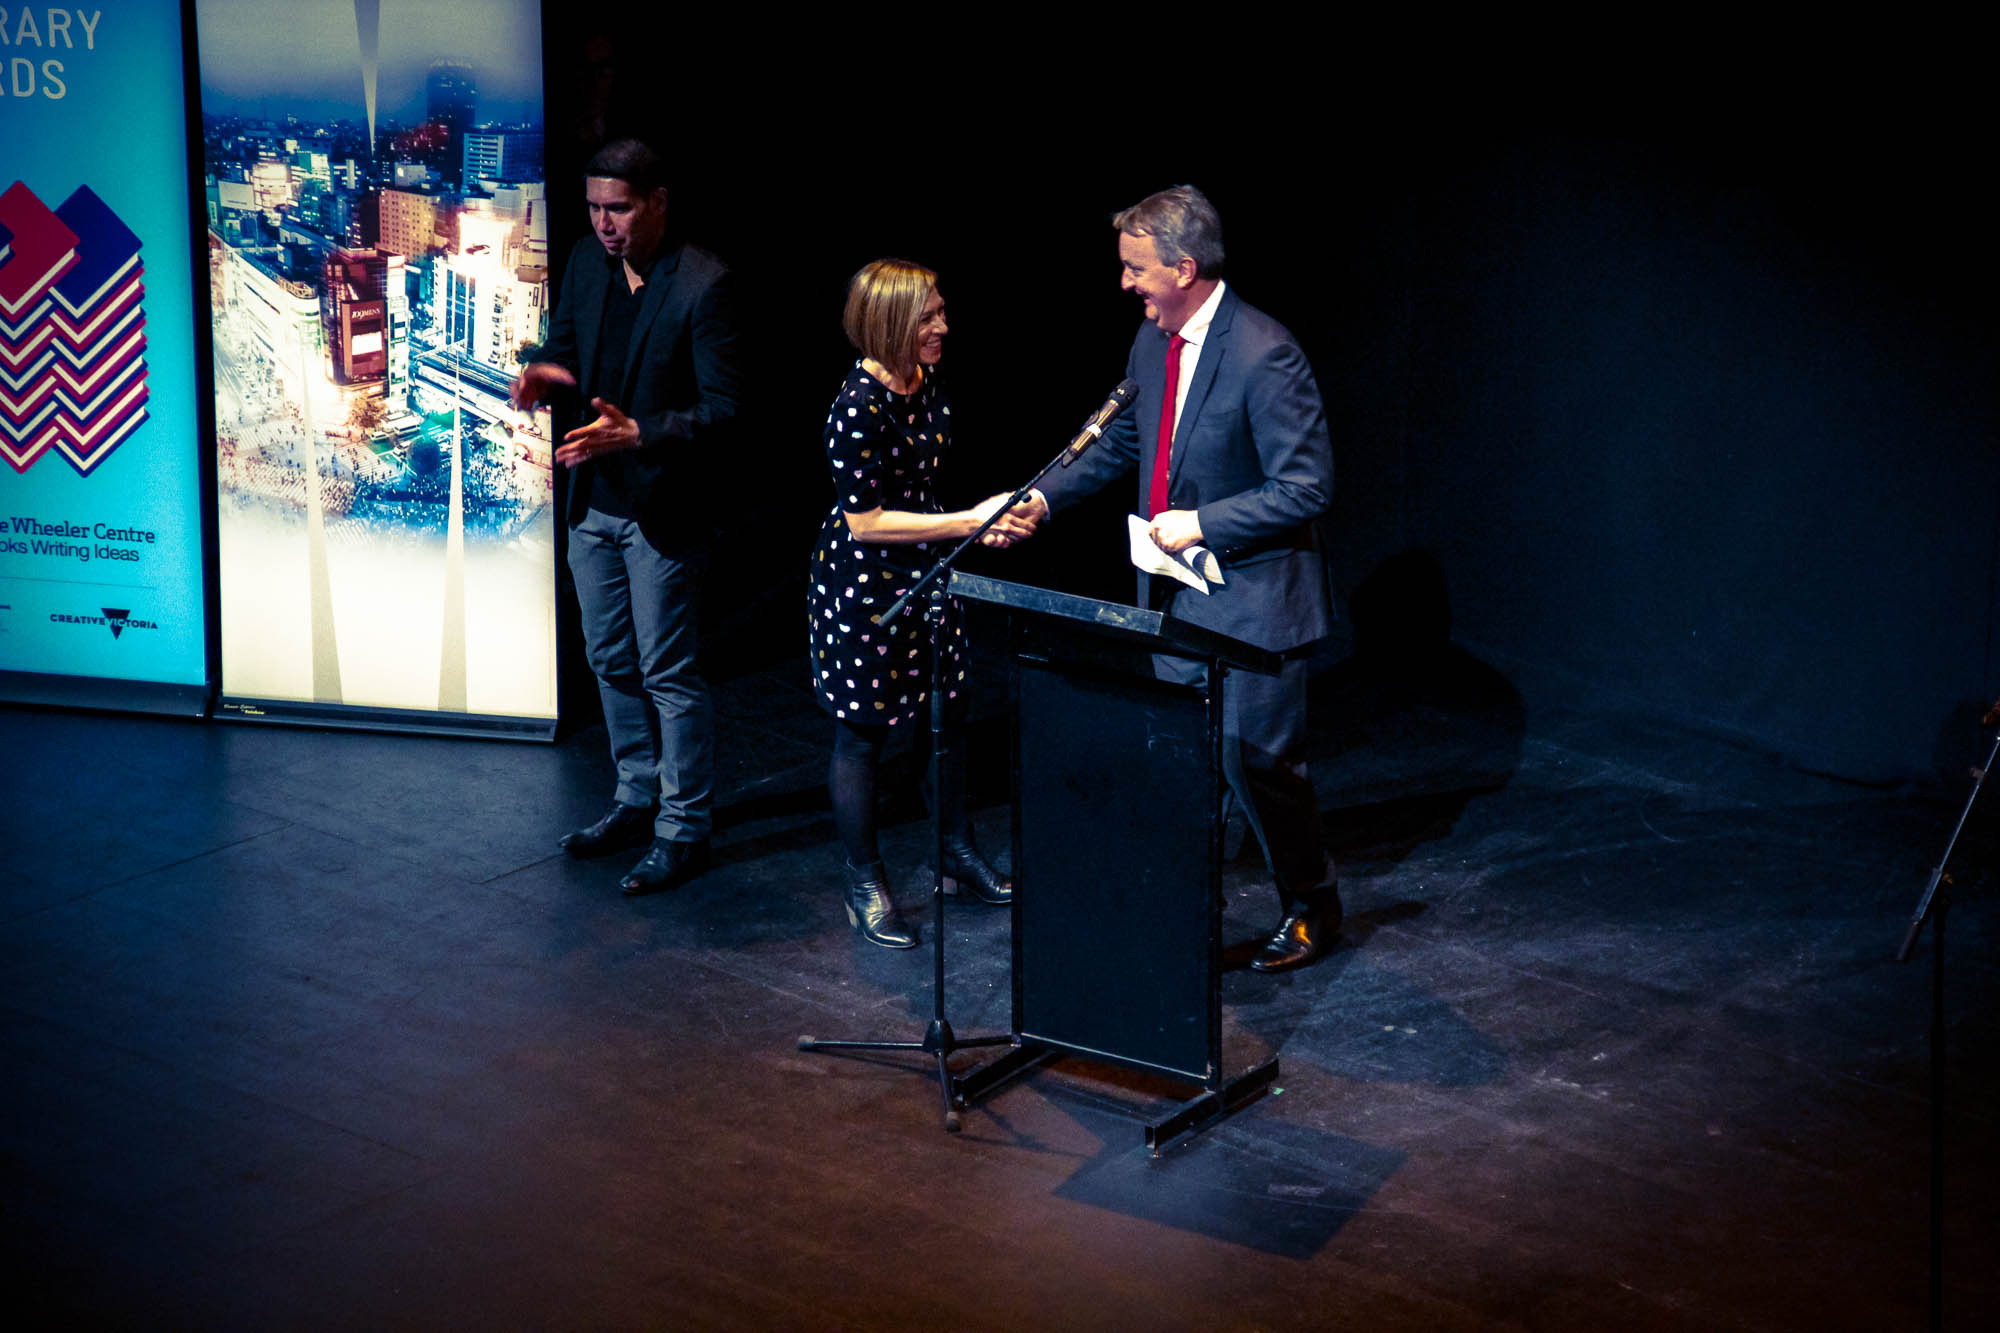 Photo: Melanie Cheng is congratulated by Minister for Creative Industries Martin Foley at the opening night of the 2016 Emerging Writers' Festival, where the Award is presented